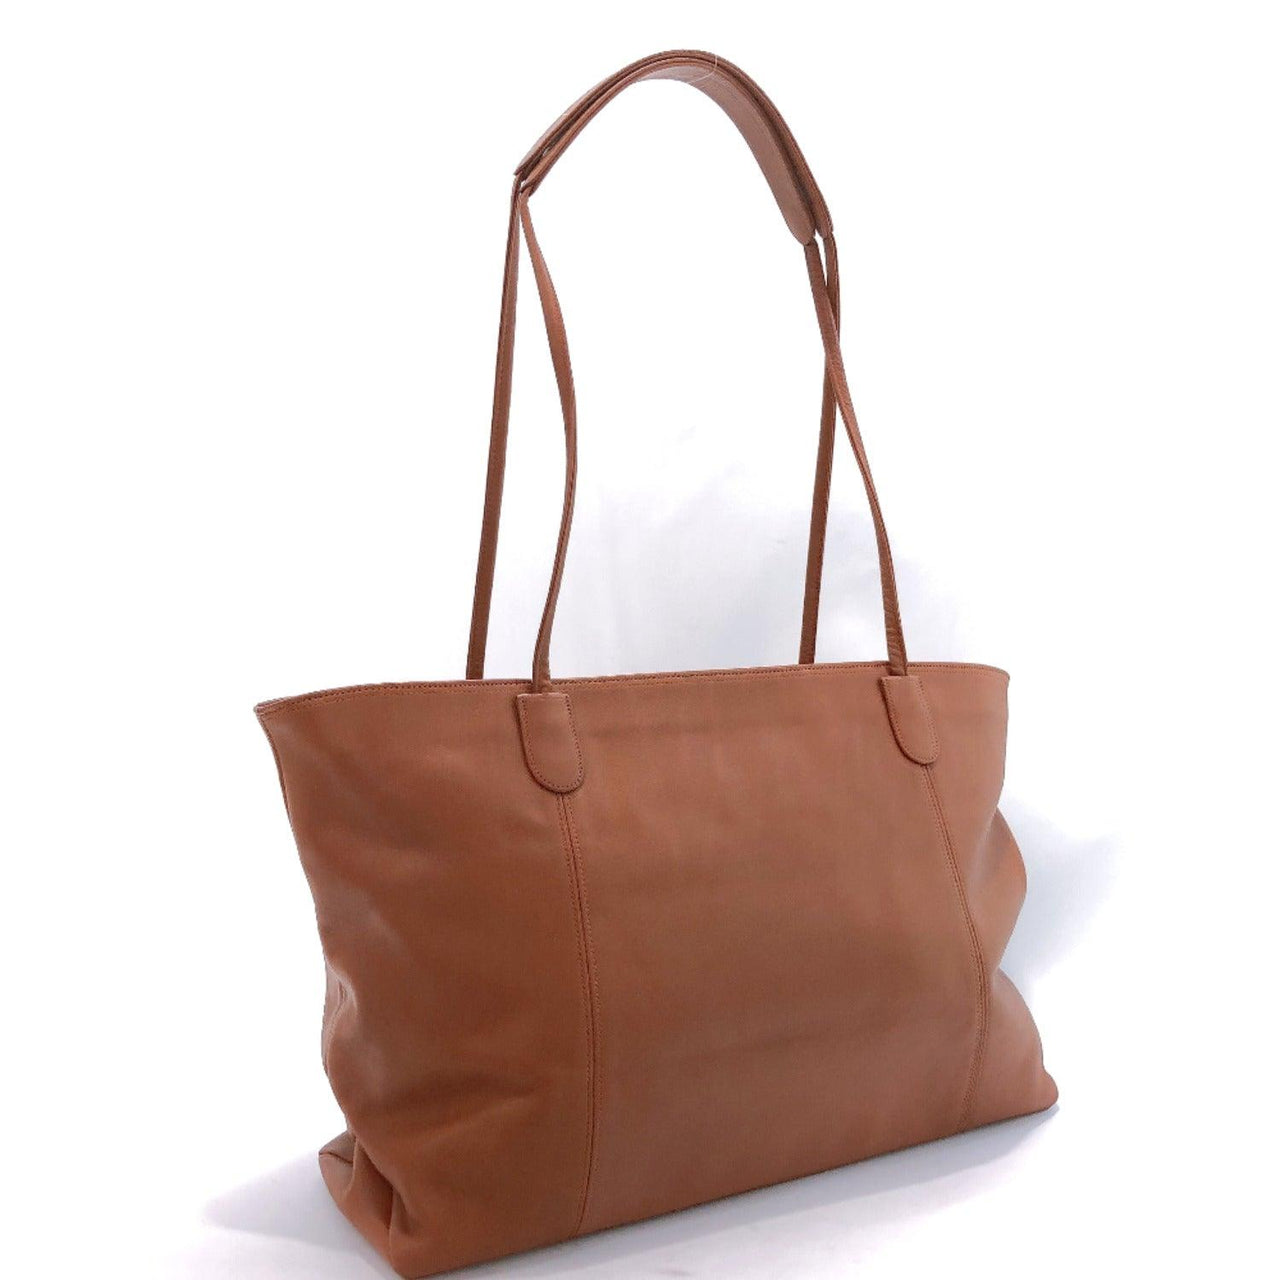 COACH Tote Bag 4067 leather Brown Women Used